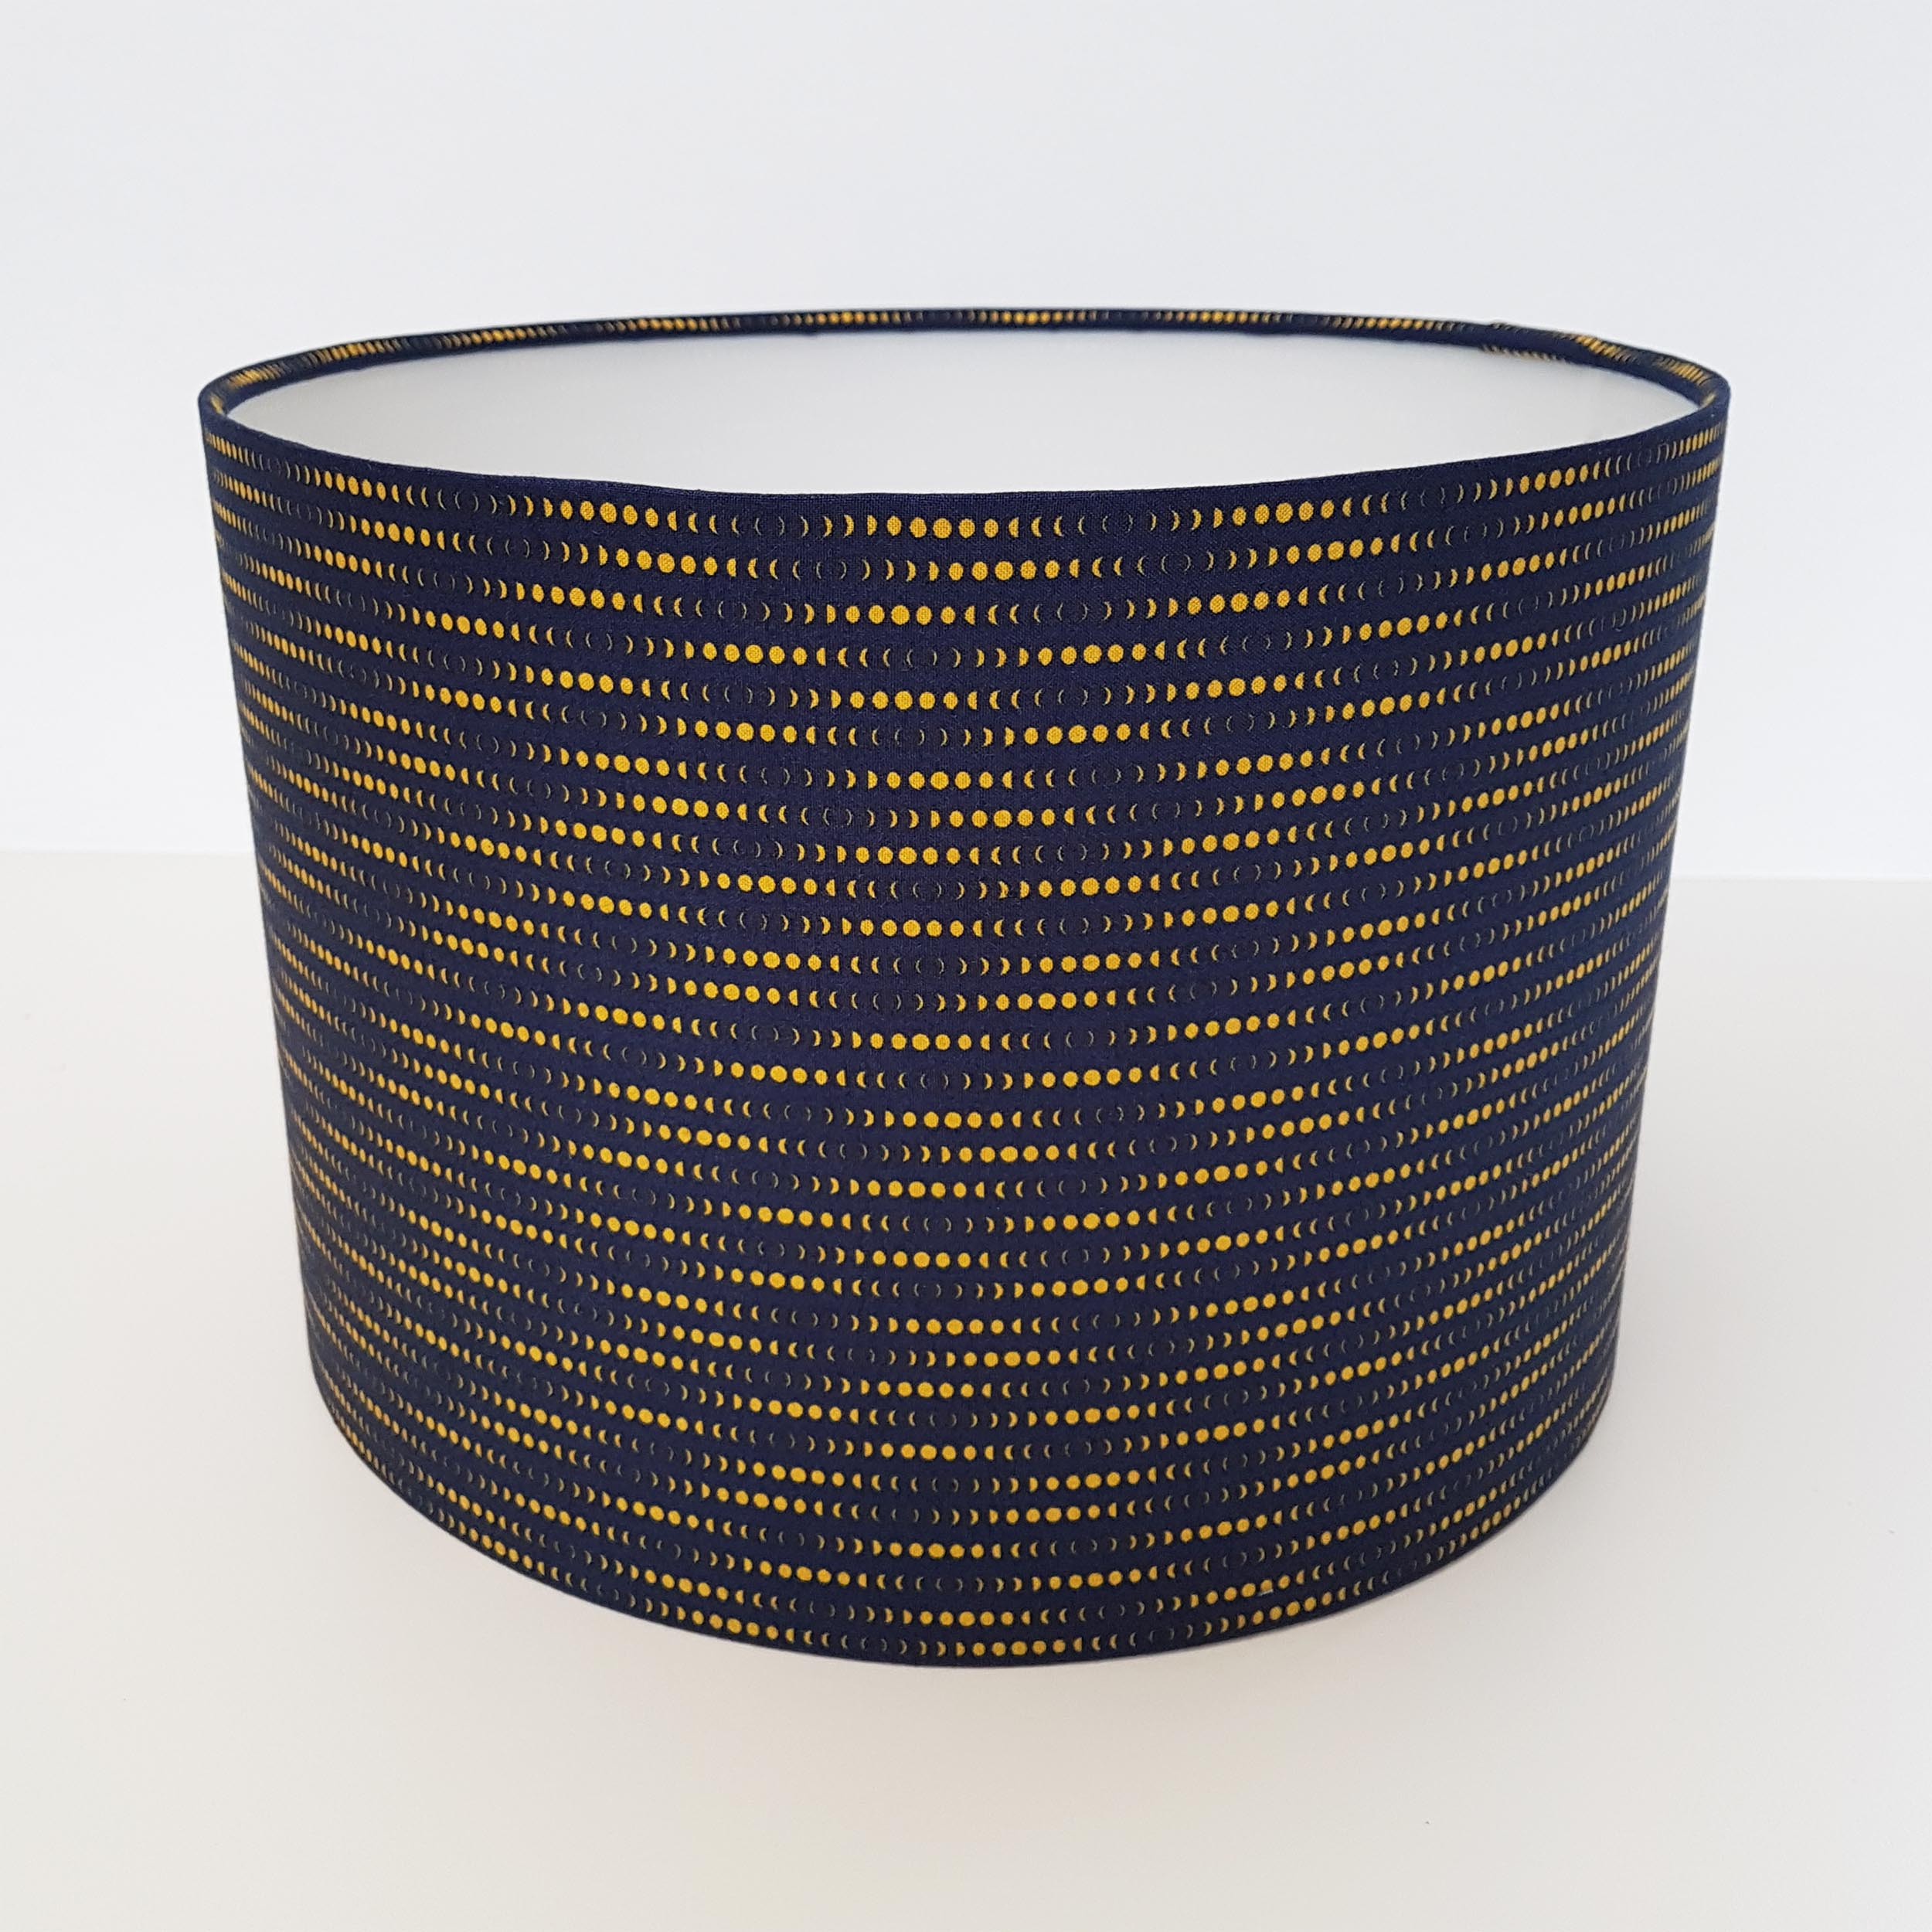 Navy Blue and Mustard Lampshade, Phases of the Moon